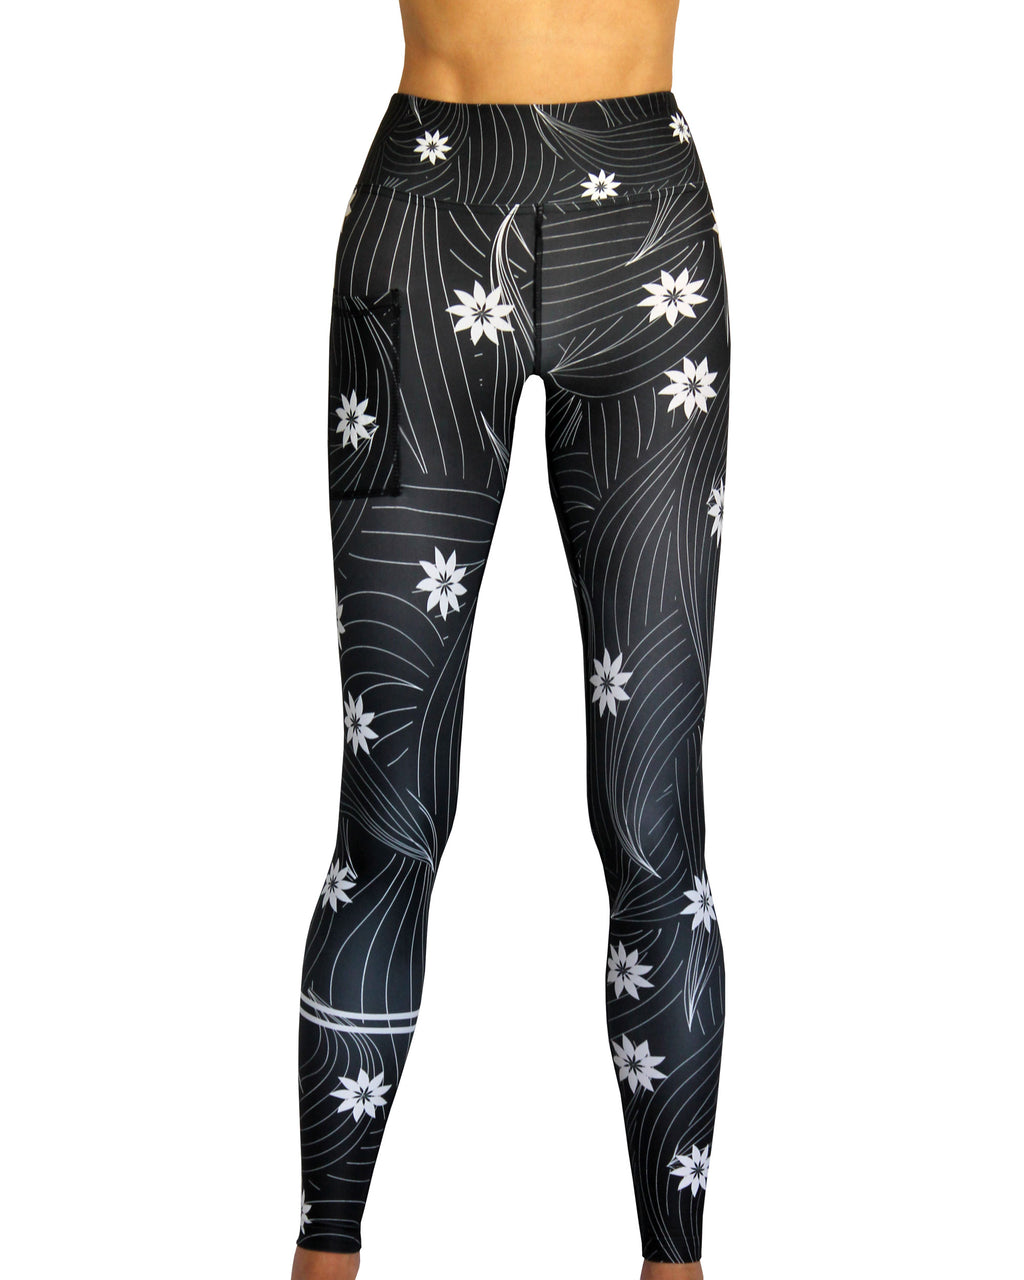 FLOWERS IN MY HAIR Tech Tights VIVOLICIOUS Active Wear Leggings